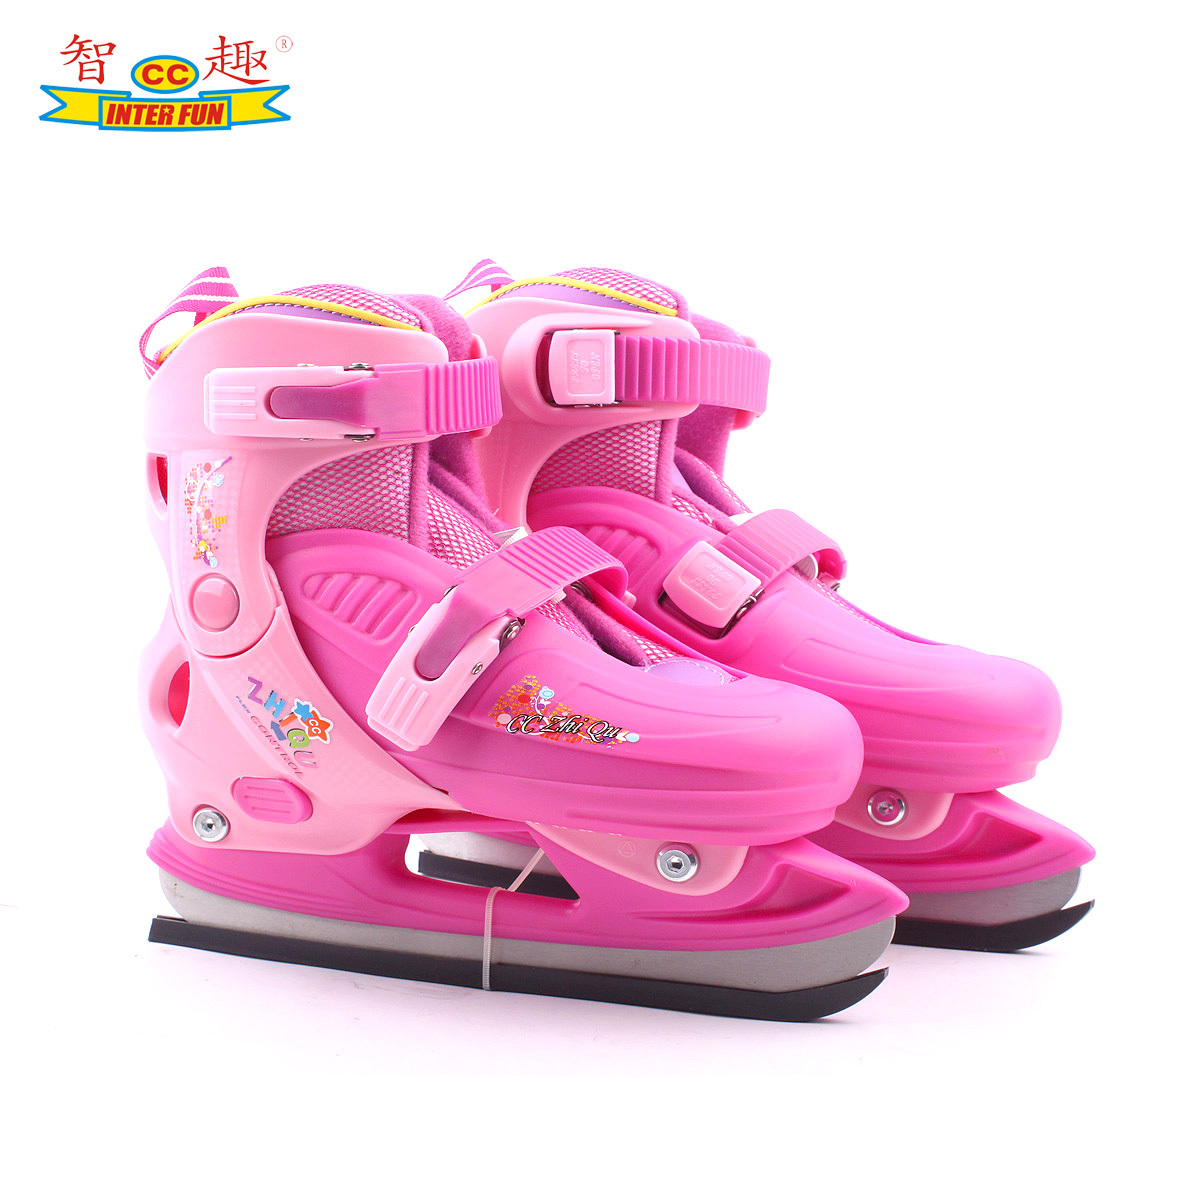 Intellectual desires authentic skate shoes children professional adjustable roller skates skates ice skate hockey skates